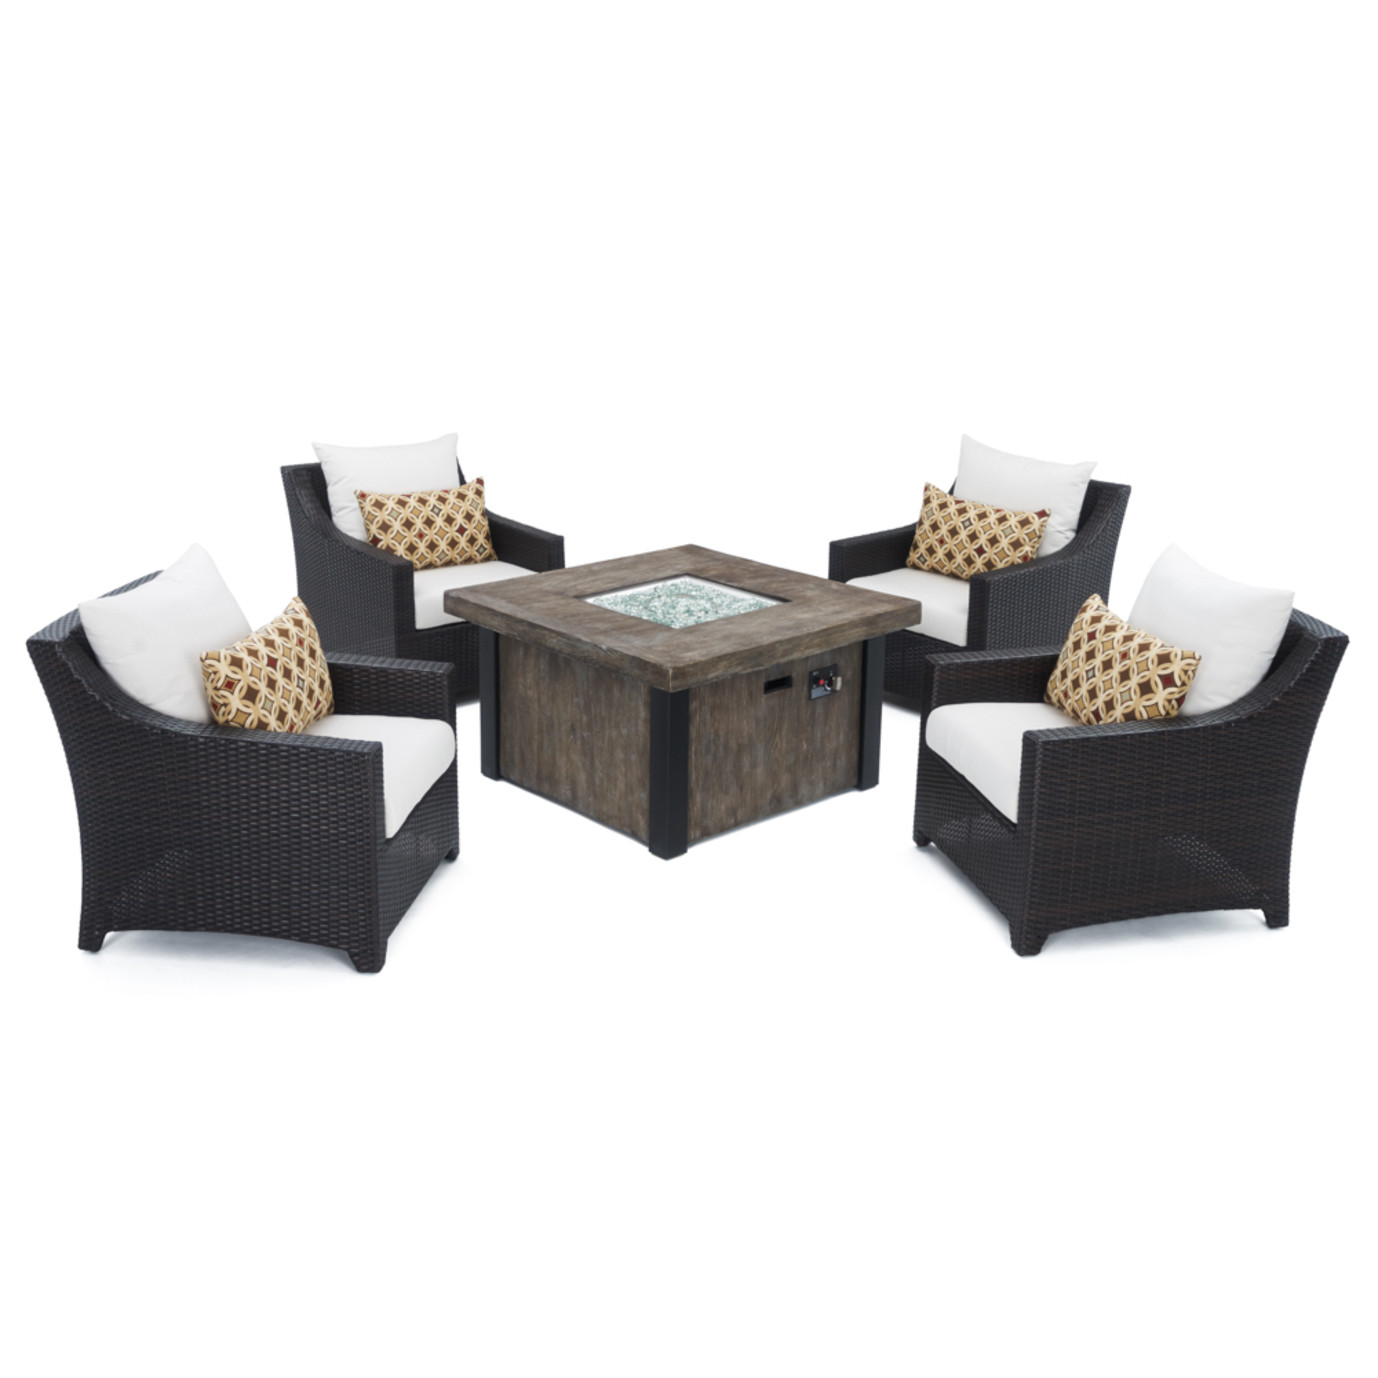 Deco™ 5 Piece Fire Chat Set- Moroccan Cream